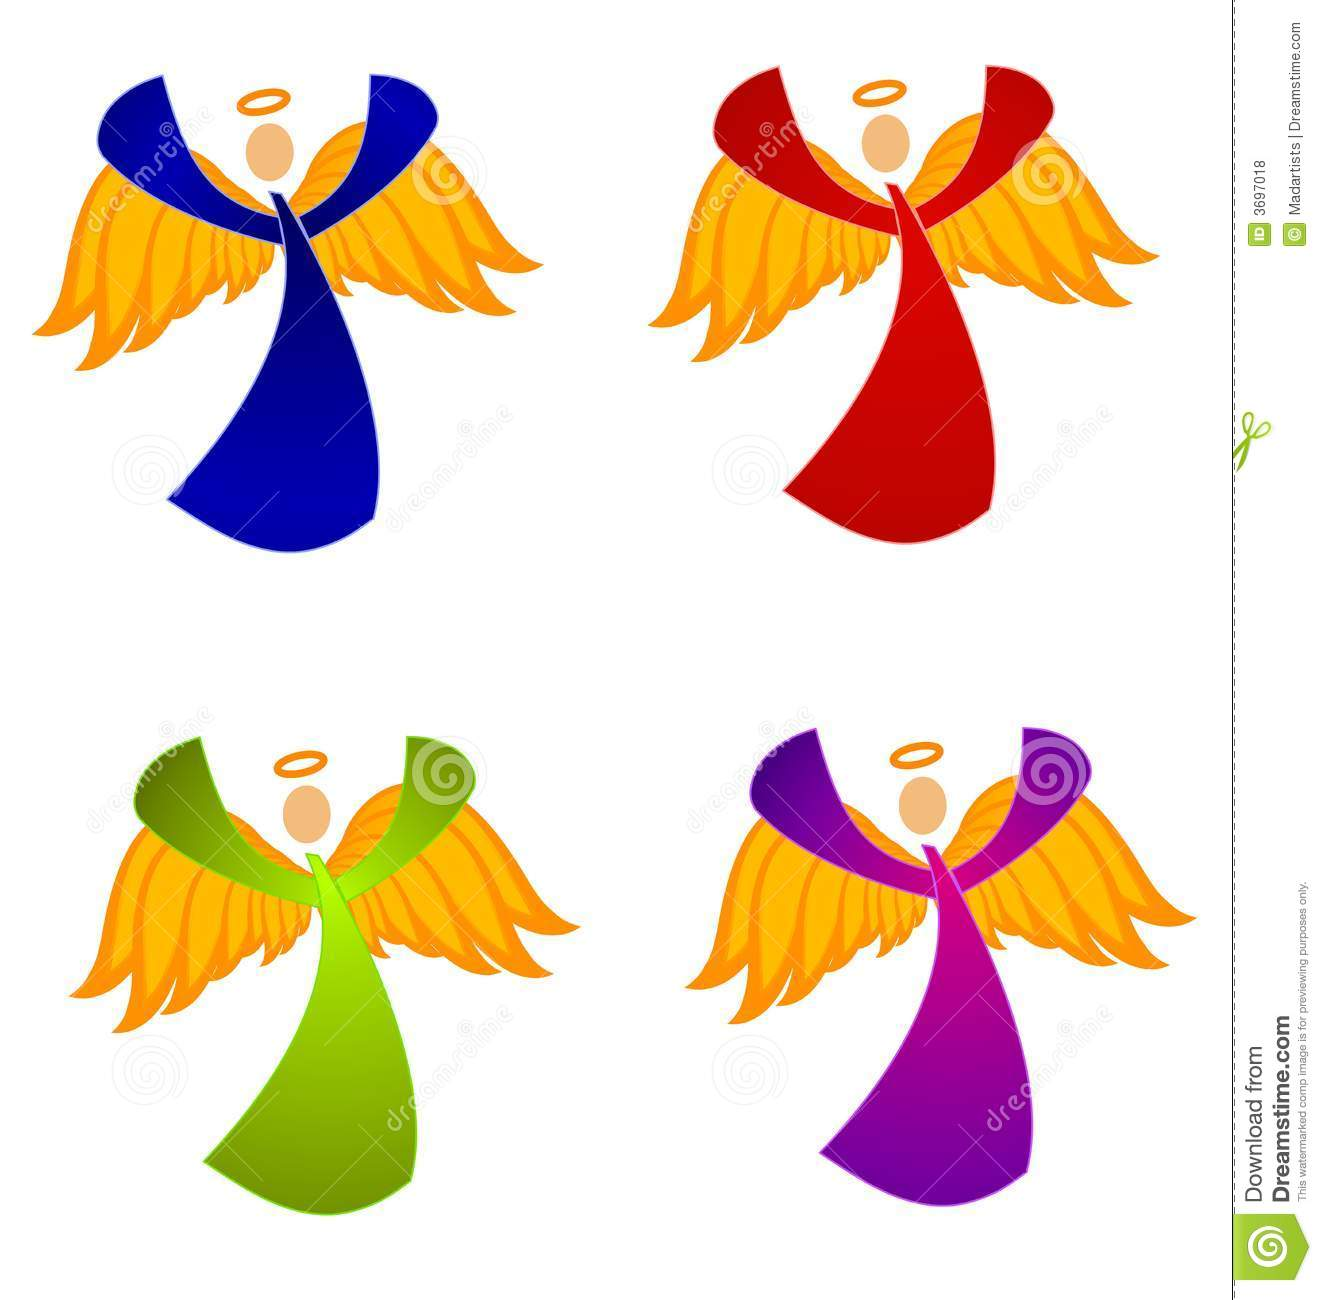 variety of christmas angels clip art stock illustration rh dreamstime com angel clip art images free free angel clipart images